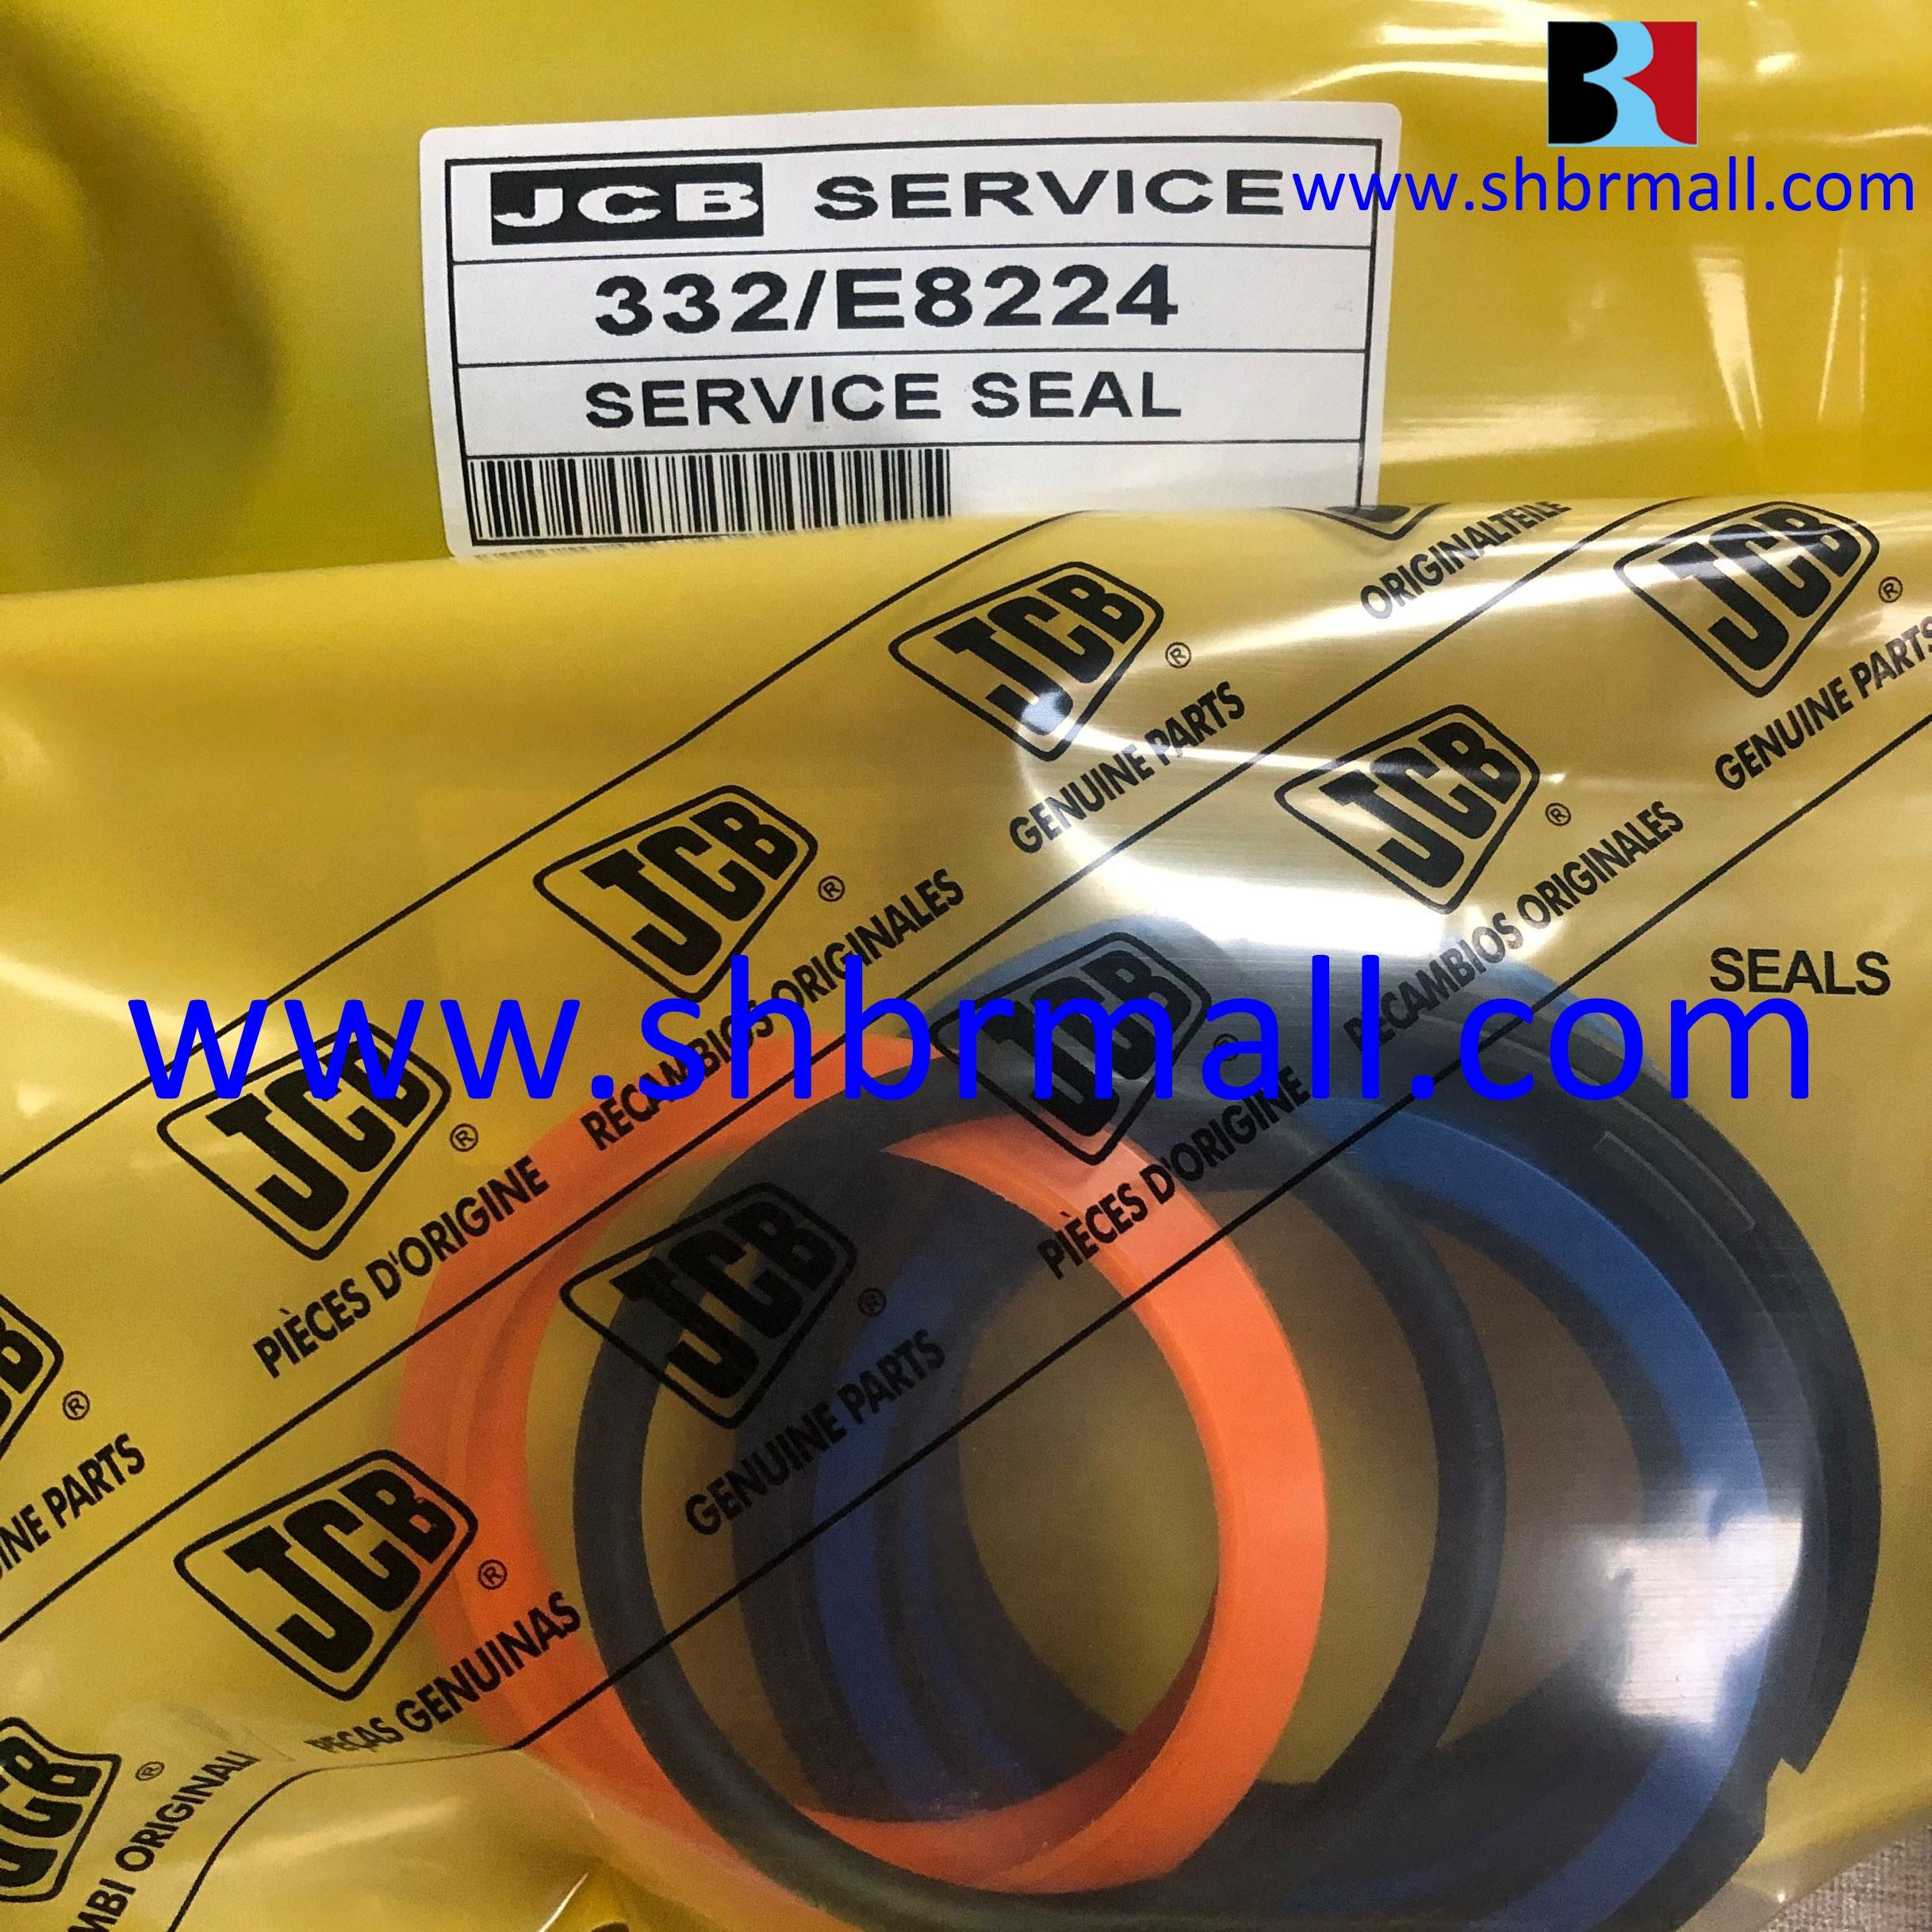 332-E8224 Complete Hydraulic Seal Kits for JCB Backhoe Loader